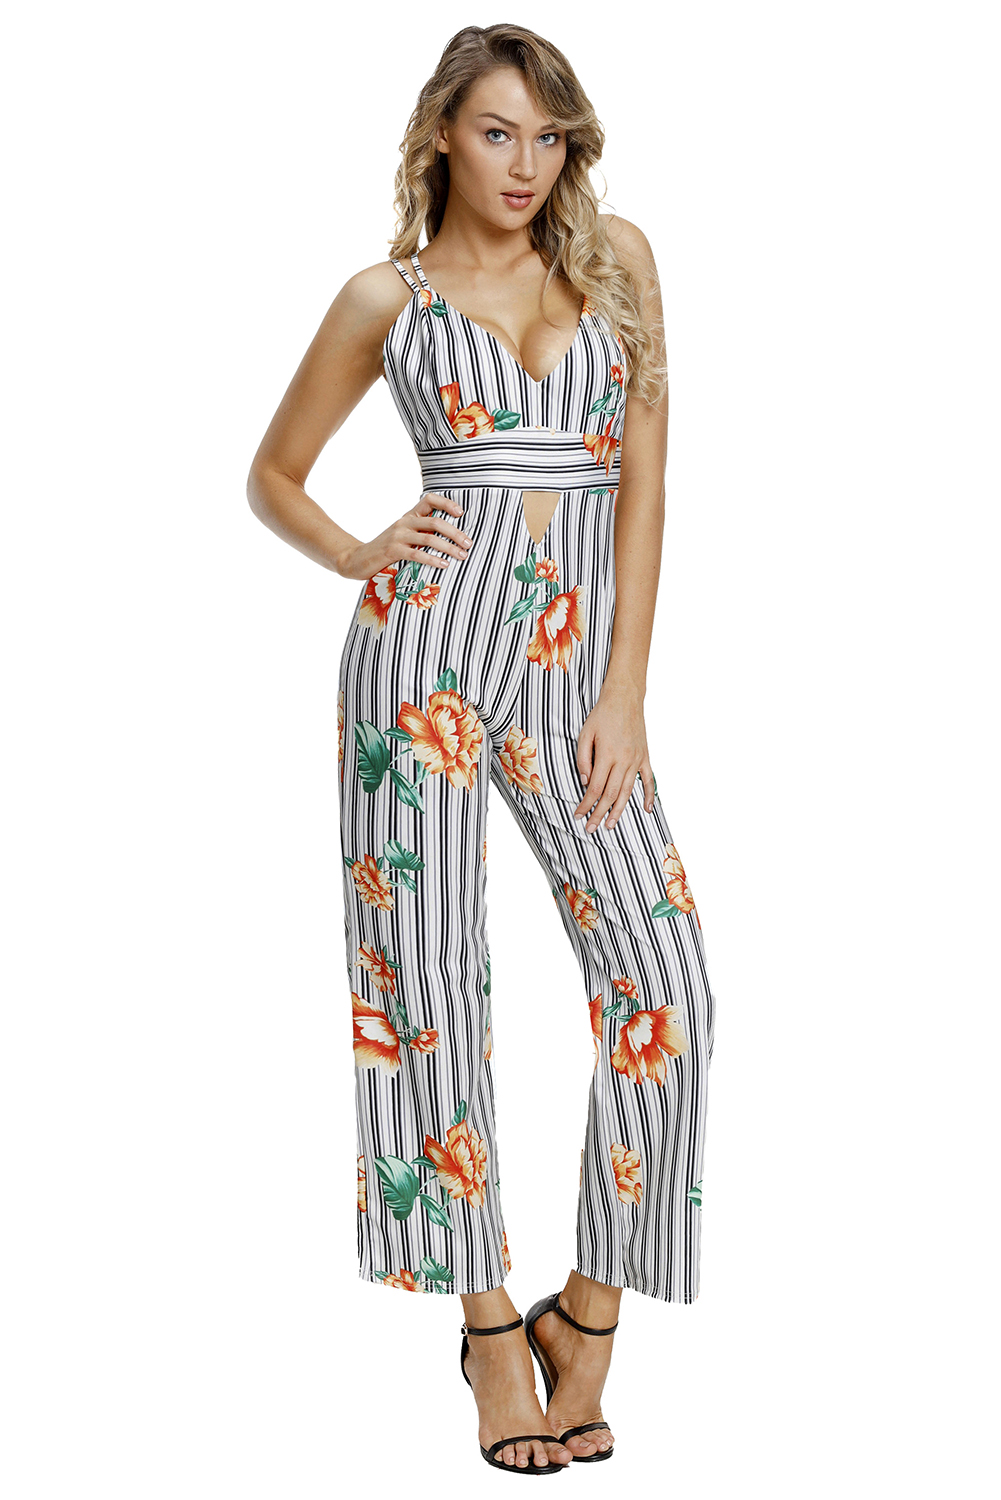 2018 Summer Elegant Ladies Temperament Pants Print Hammock Sleeveless Black White Stripes Floral Jumpsuits & Rompers